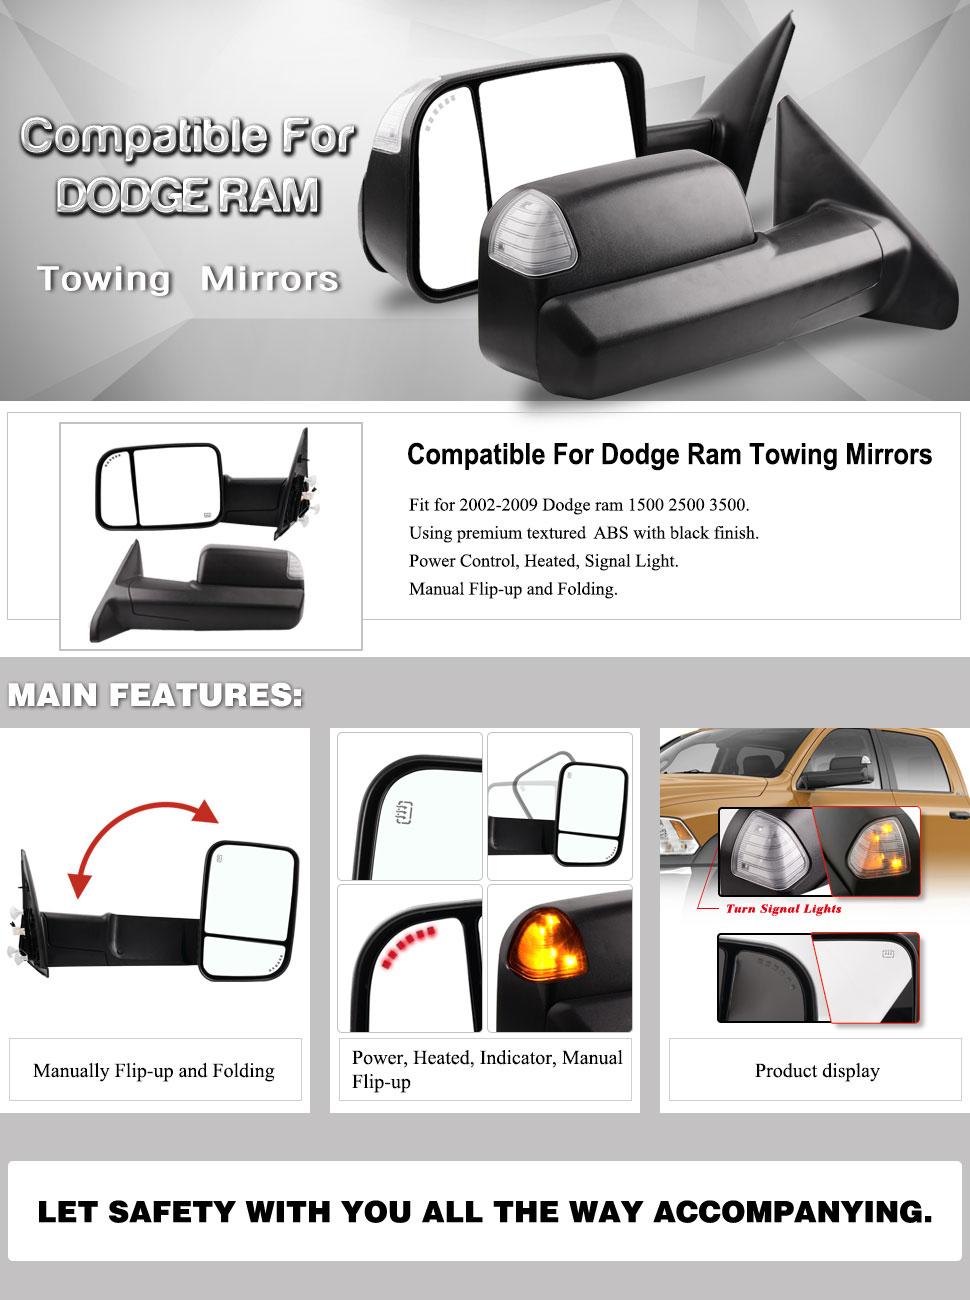 Towing Mirrors Compatible for Dodge Ram, YITAMOTOR Power Heated Arrow on